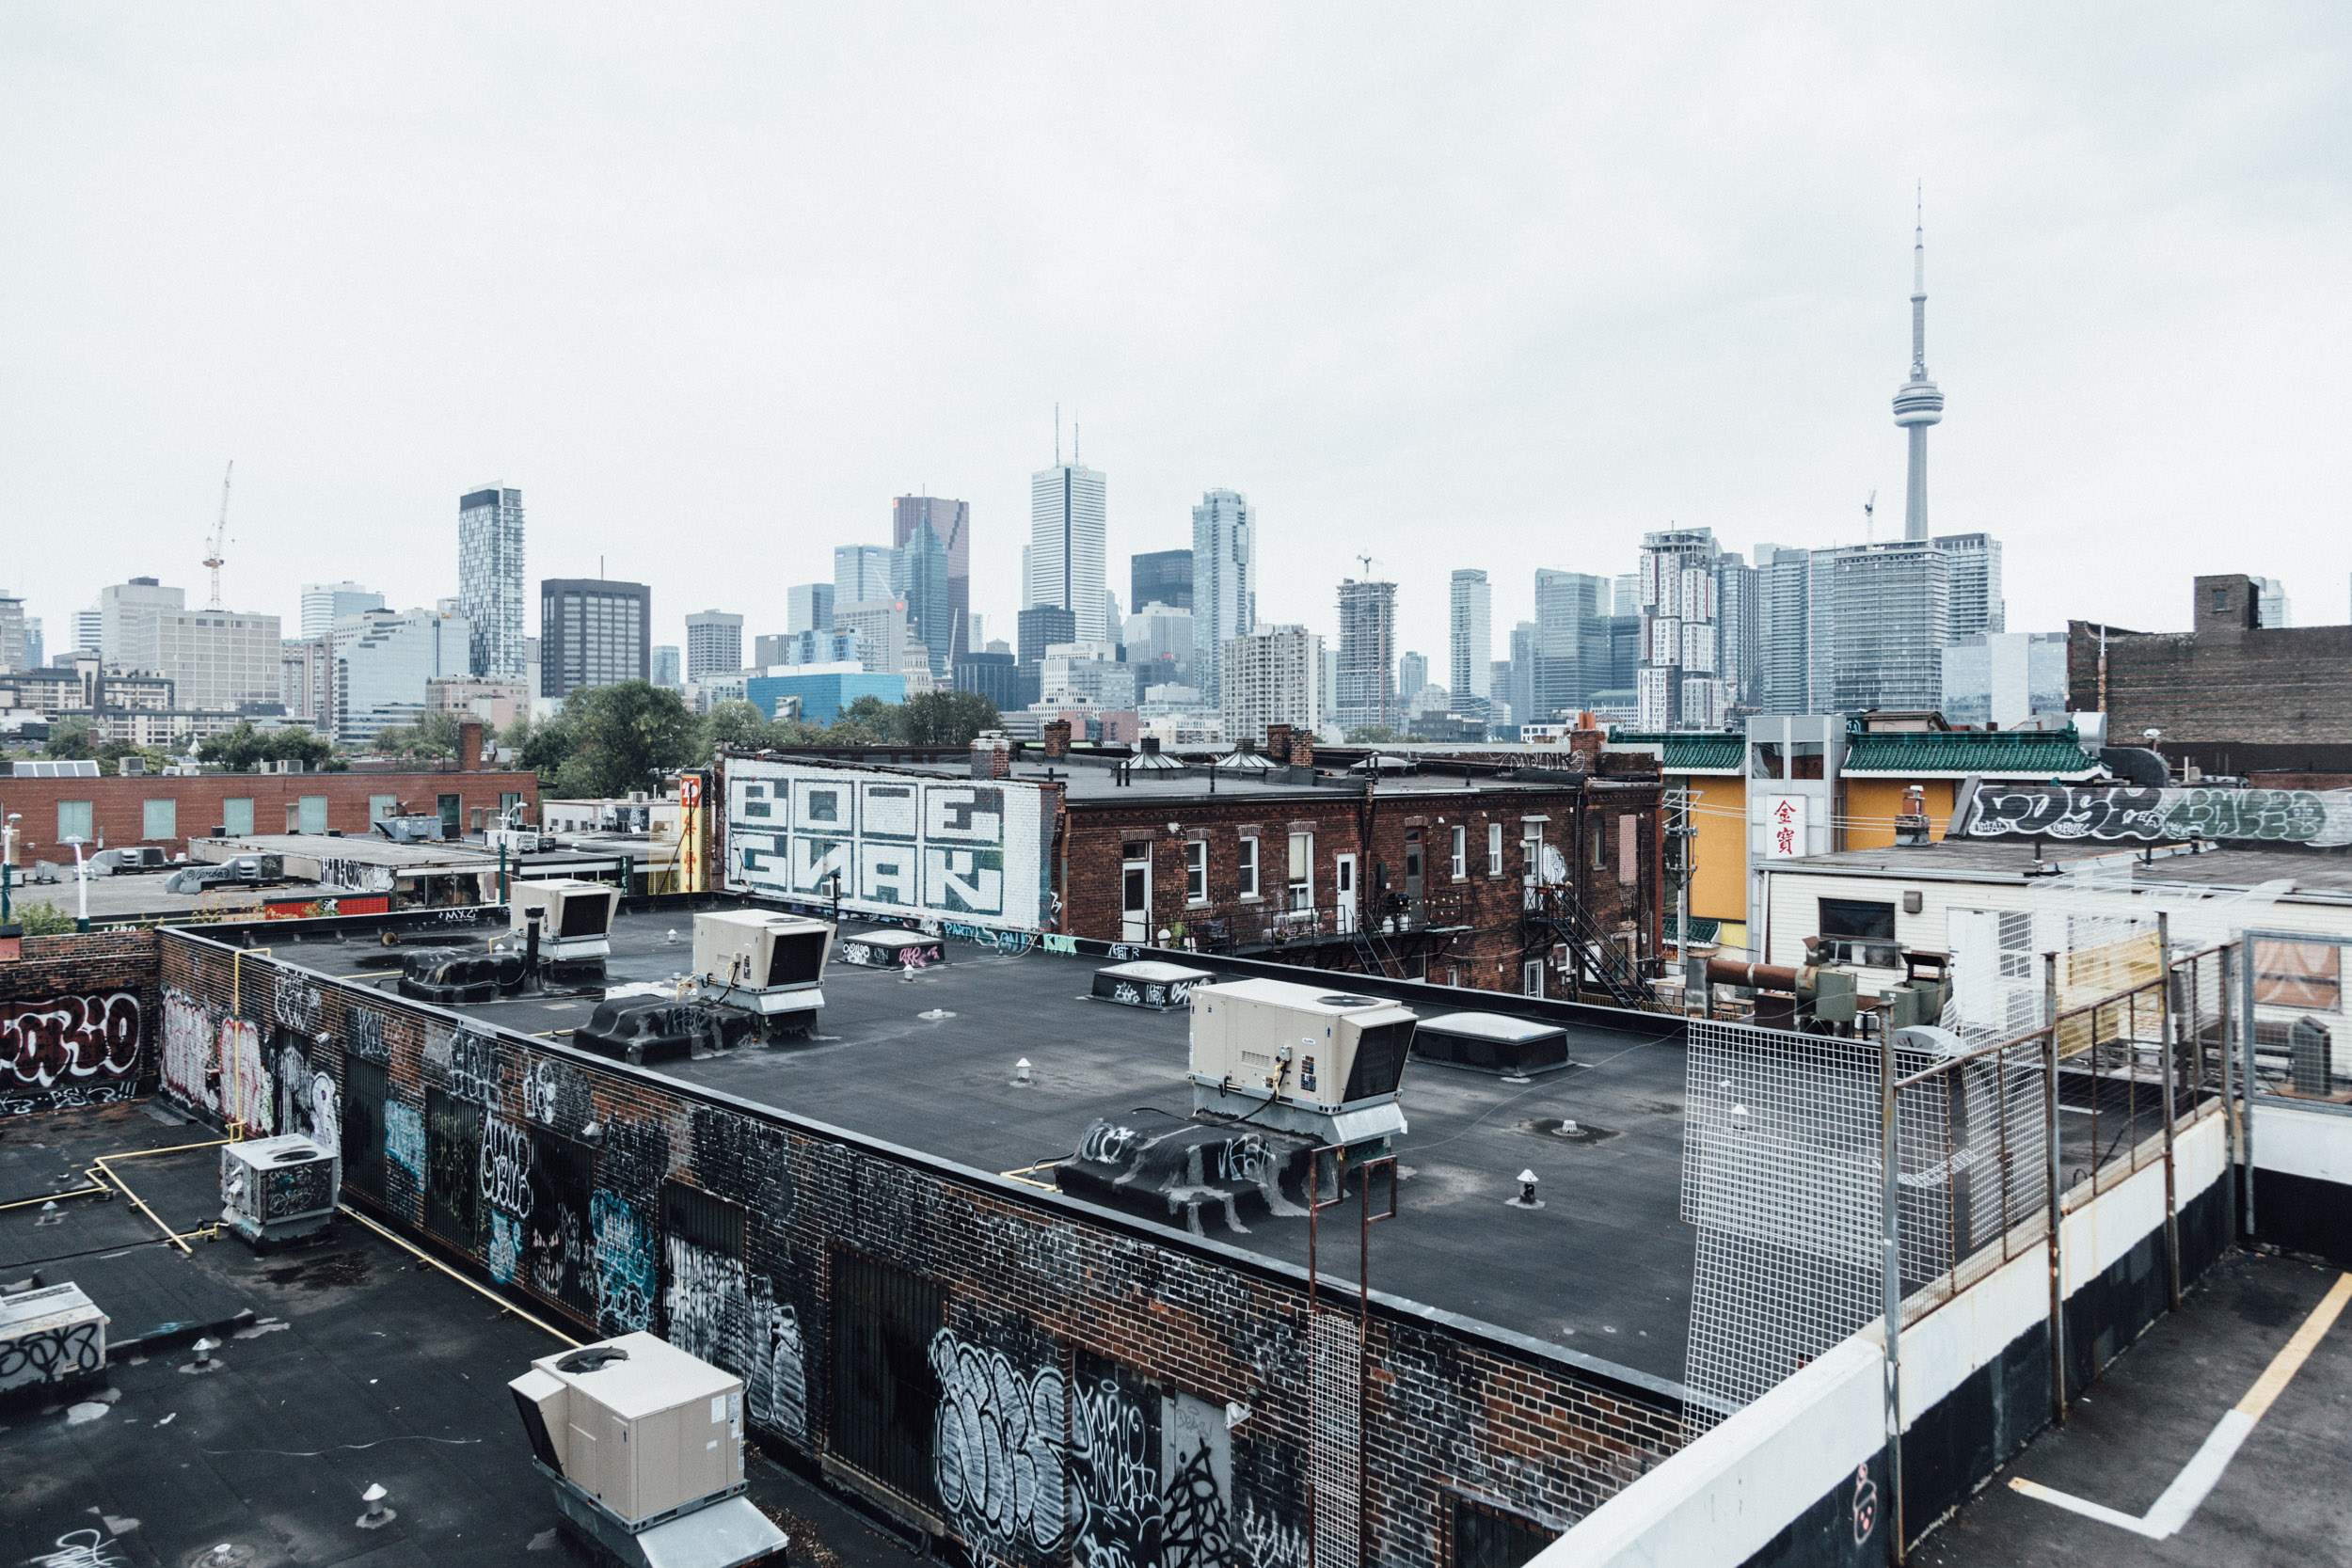 Photo of warehouses in Toronto's west end. Photo by Matt Quinn, courtesy of Unsplash